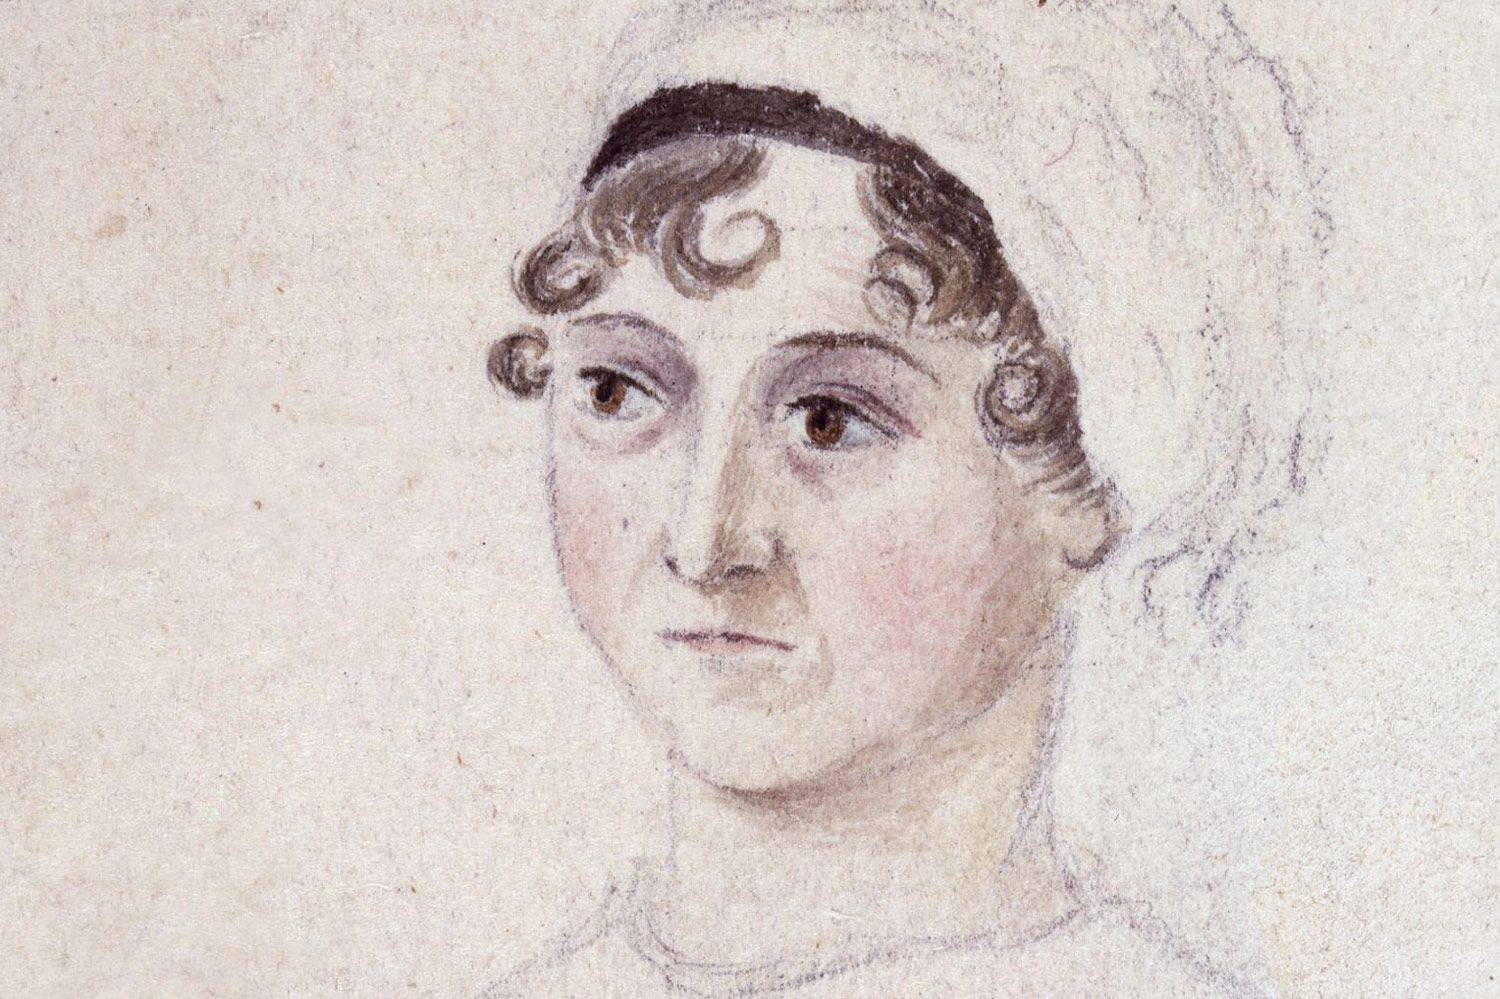 English Professor Alex Woloch and two doctoral students discuss author Jane Austen's writing style and why her novels still dominate literary culture.